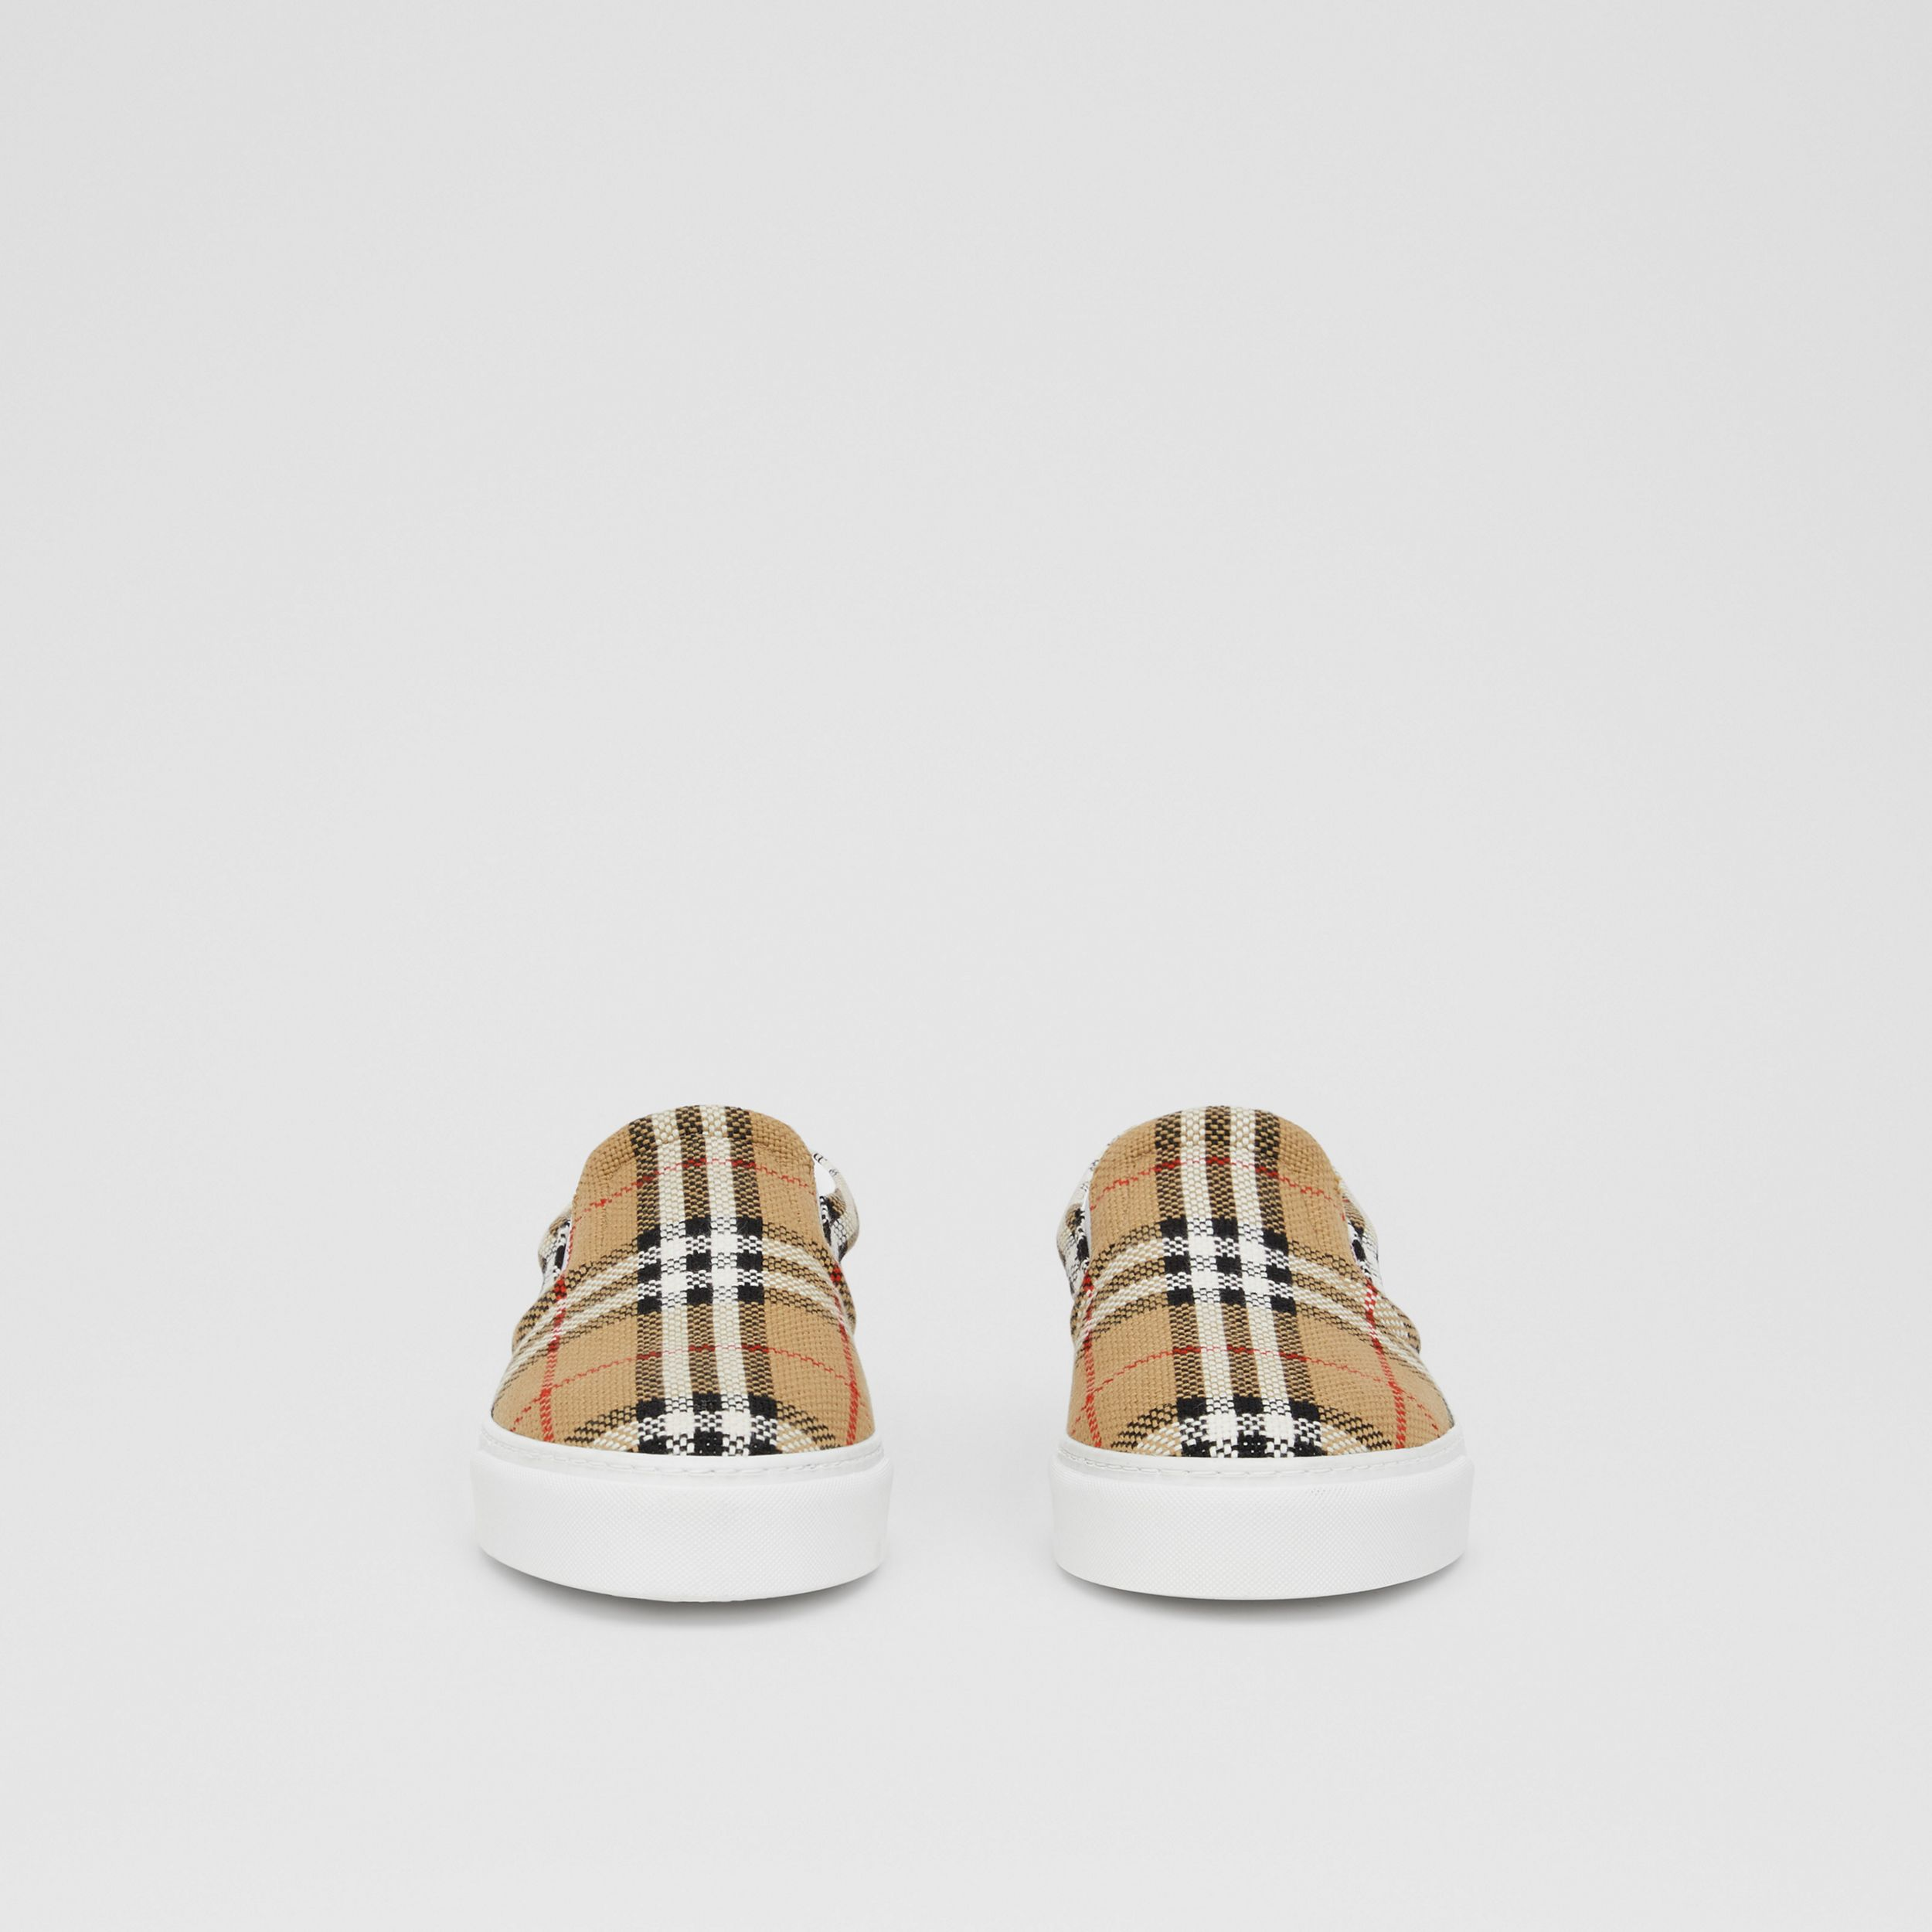 Bio-based Sole Latticed Cotton Slip-on Sneakers in Archive Beige - Women | Burberry - 4